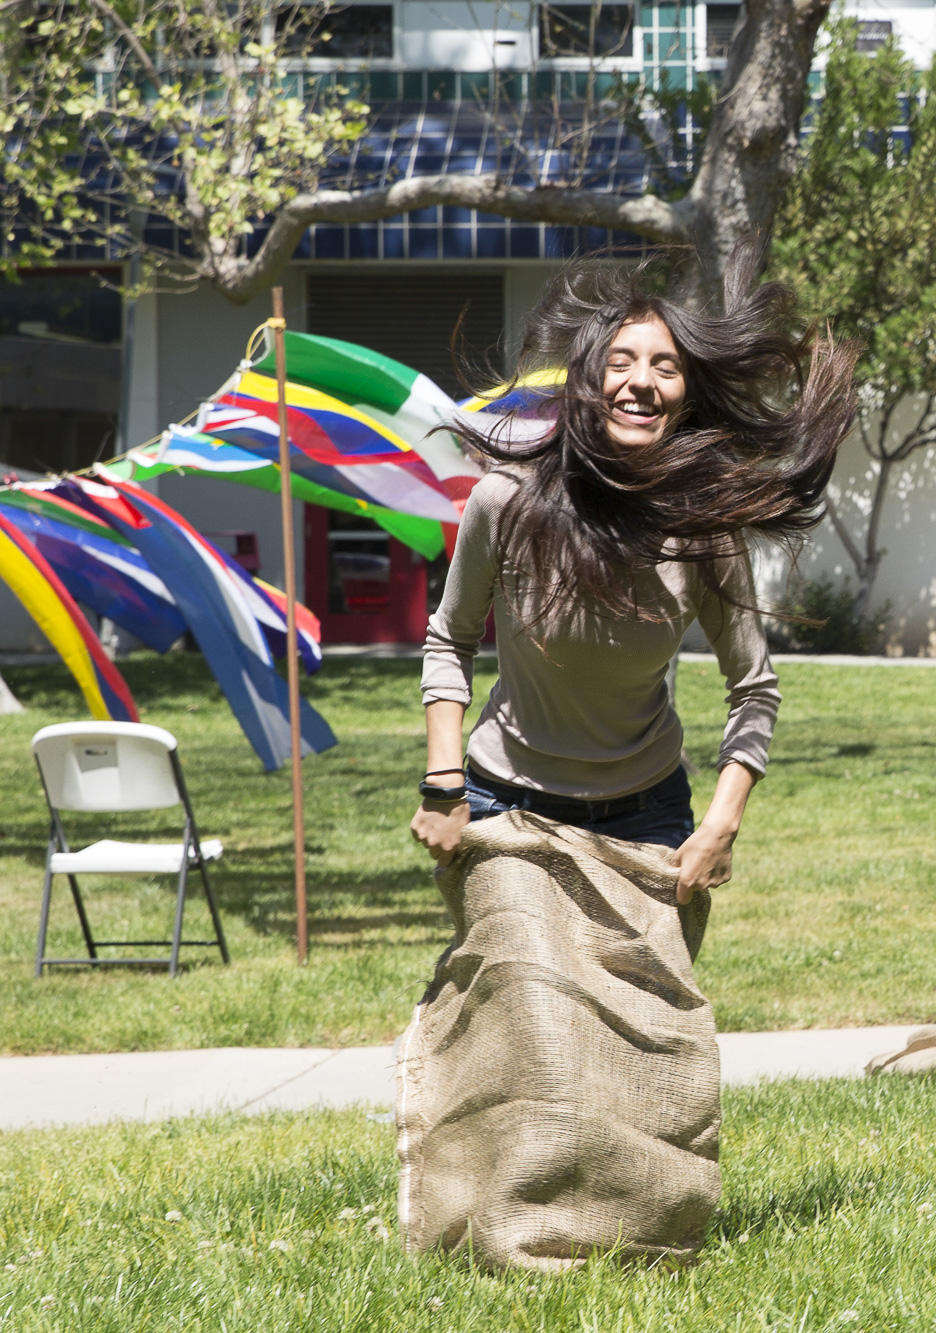 """The Cinco De Mayo celebration event that was hosted by the Santa Monica College (SMC) club """"Adelante"""" had many activities to take part in, including a potato sack race that took place in front of the SMC clock tower on the main campus in Santa Monica California on Thursday, May 3 2018. This event was put together by the Santa Monica College club """"Adelante,"""" whose goal at the event was to inform students about the origins of Cinco De Mayo and put to rest the stereotypes that come with the holiday, specifically the misperception that it is a day of independence for Mexico and also that is just a drinking holiday in the United States. (Matthew Martin/Corsair Photo)"""